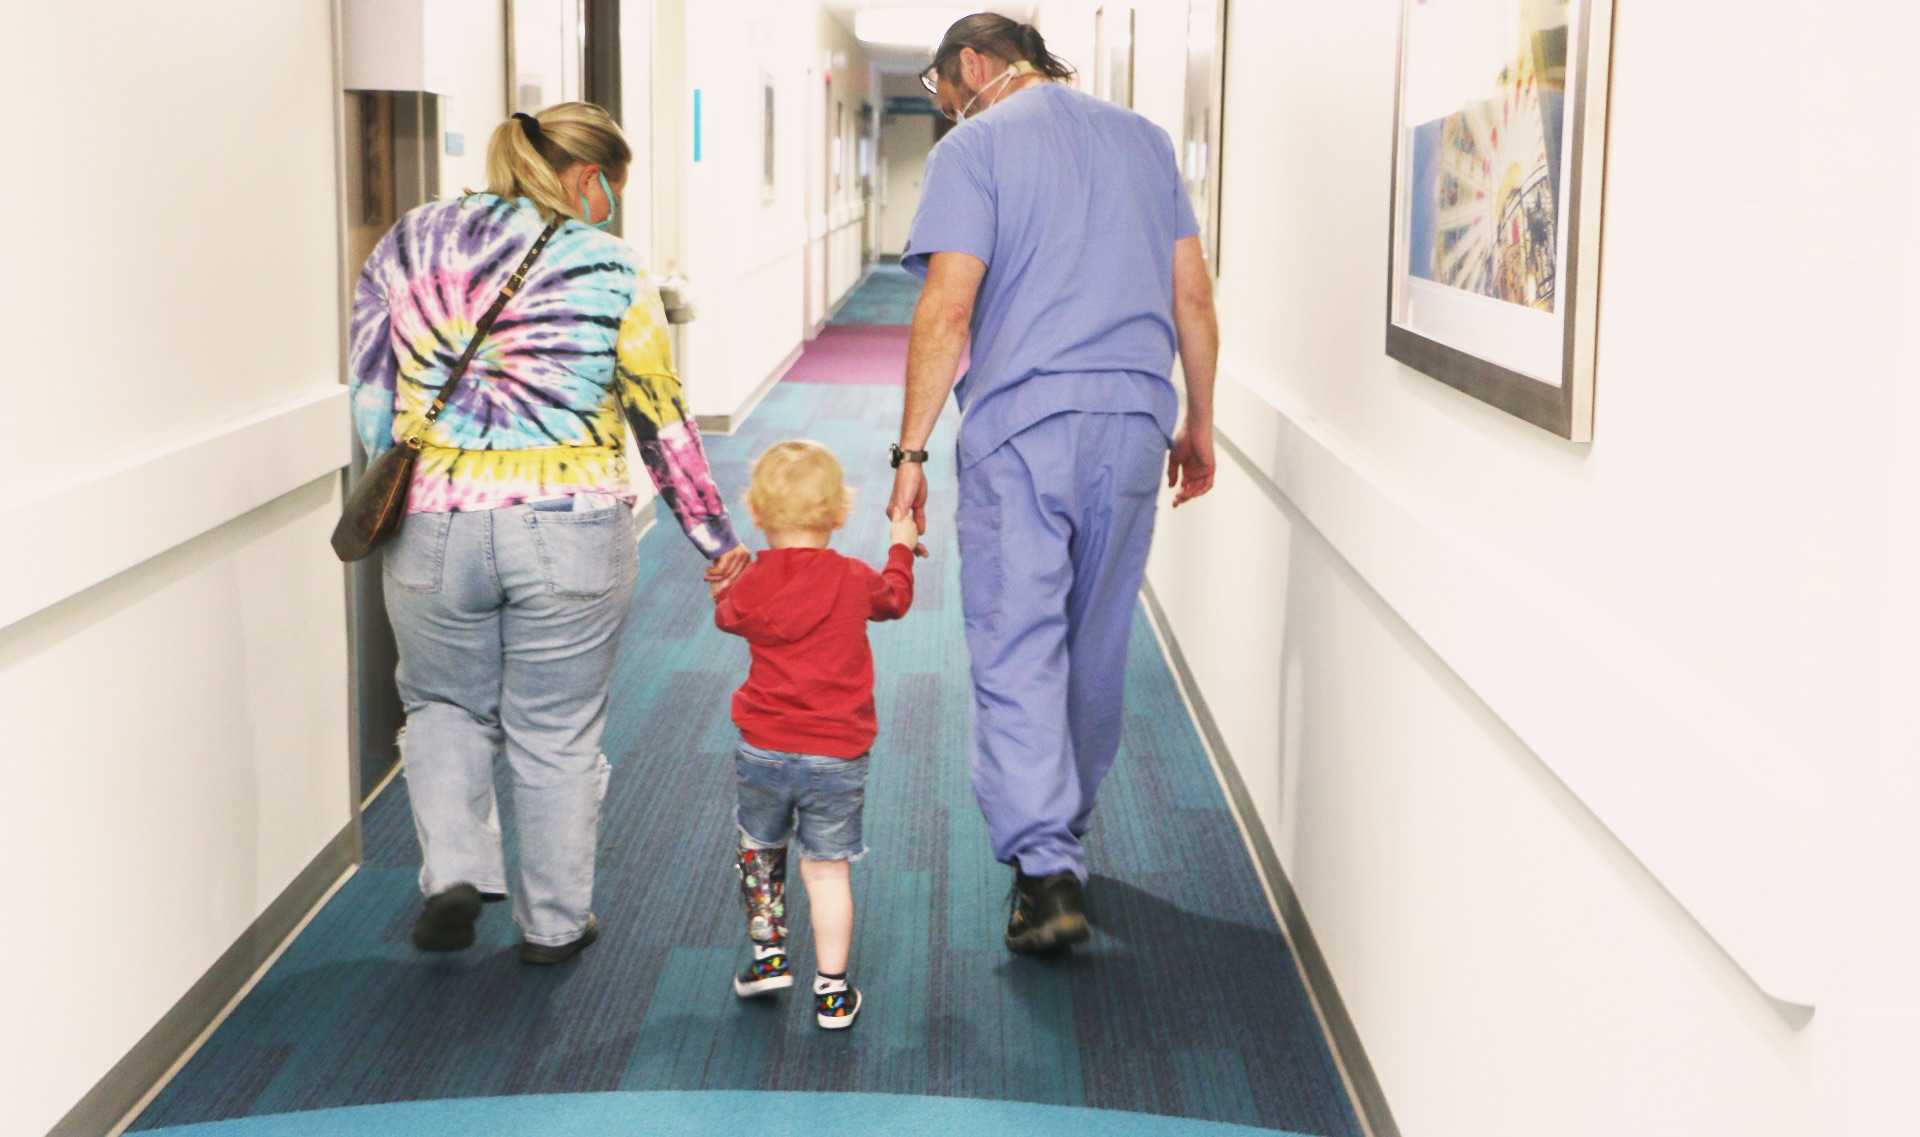 Arlo Yost is walking between his mother and Dr. Talwalkar, holding their hands as they make their way down the hallway.